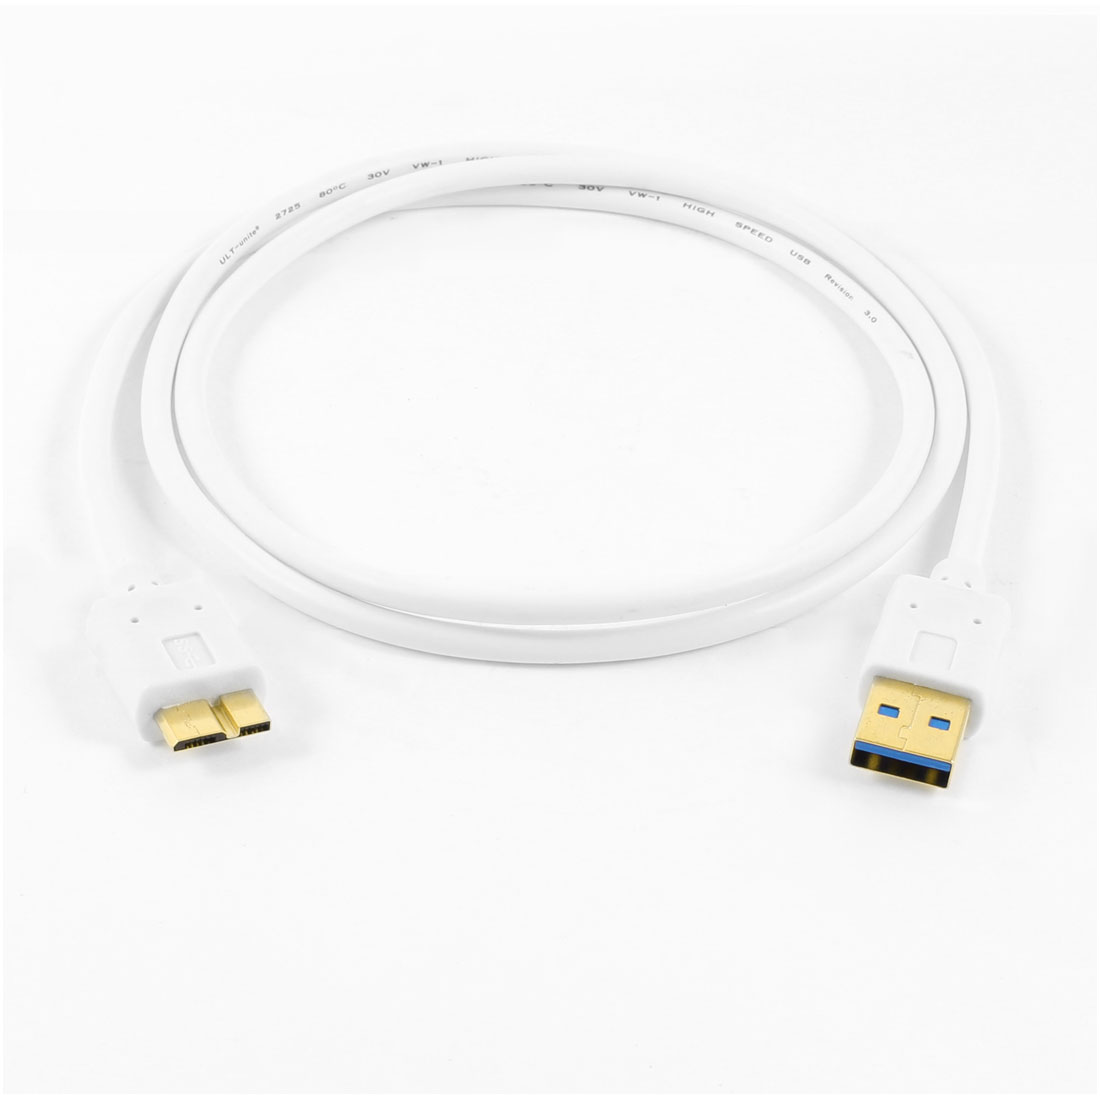 White Superspeed Data Transfer USB 3.0 Type A Male to Micro B Male Cable Cord